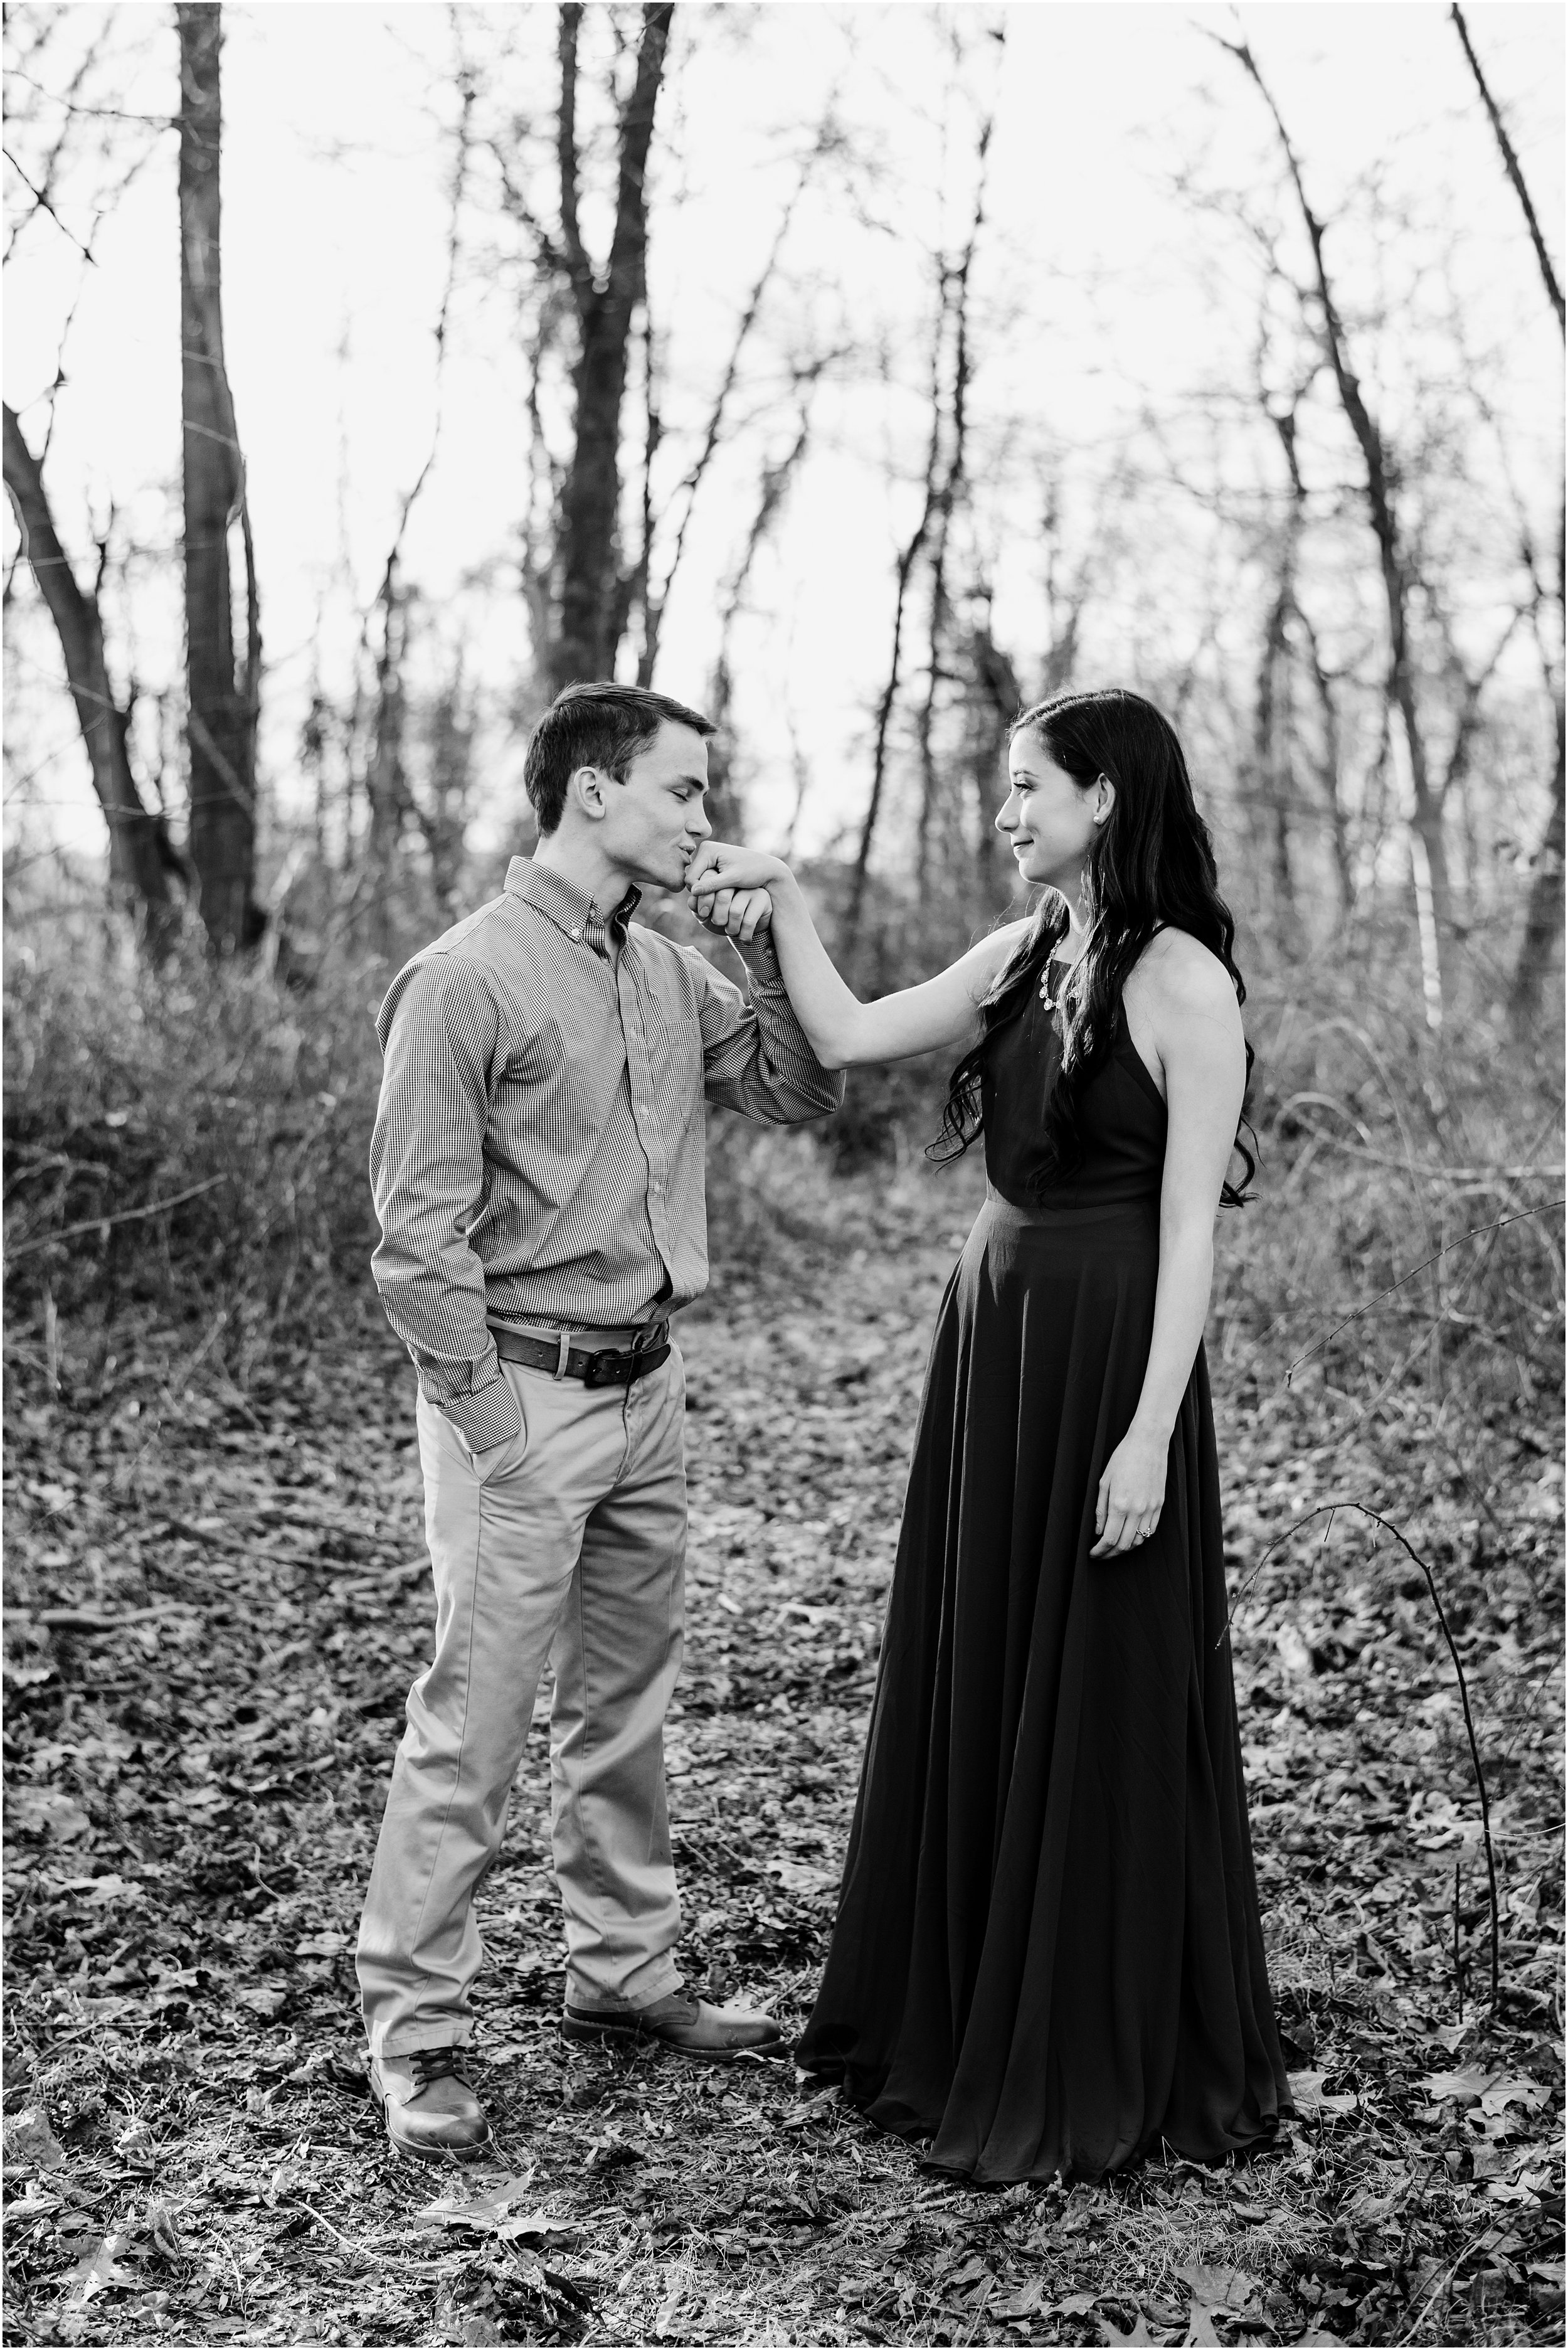 hannah leigh photography winter overlook engagement session lancaster PA_2638.jpg